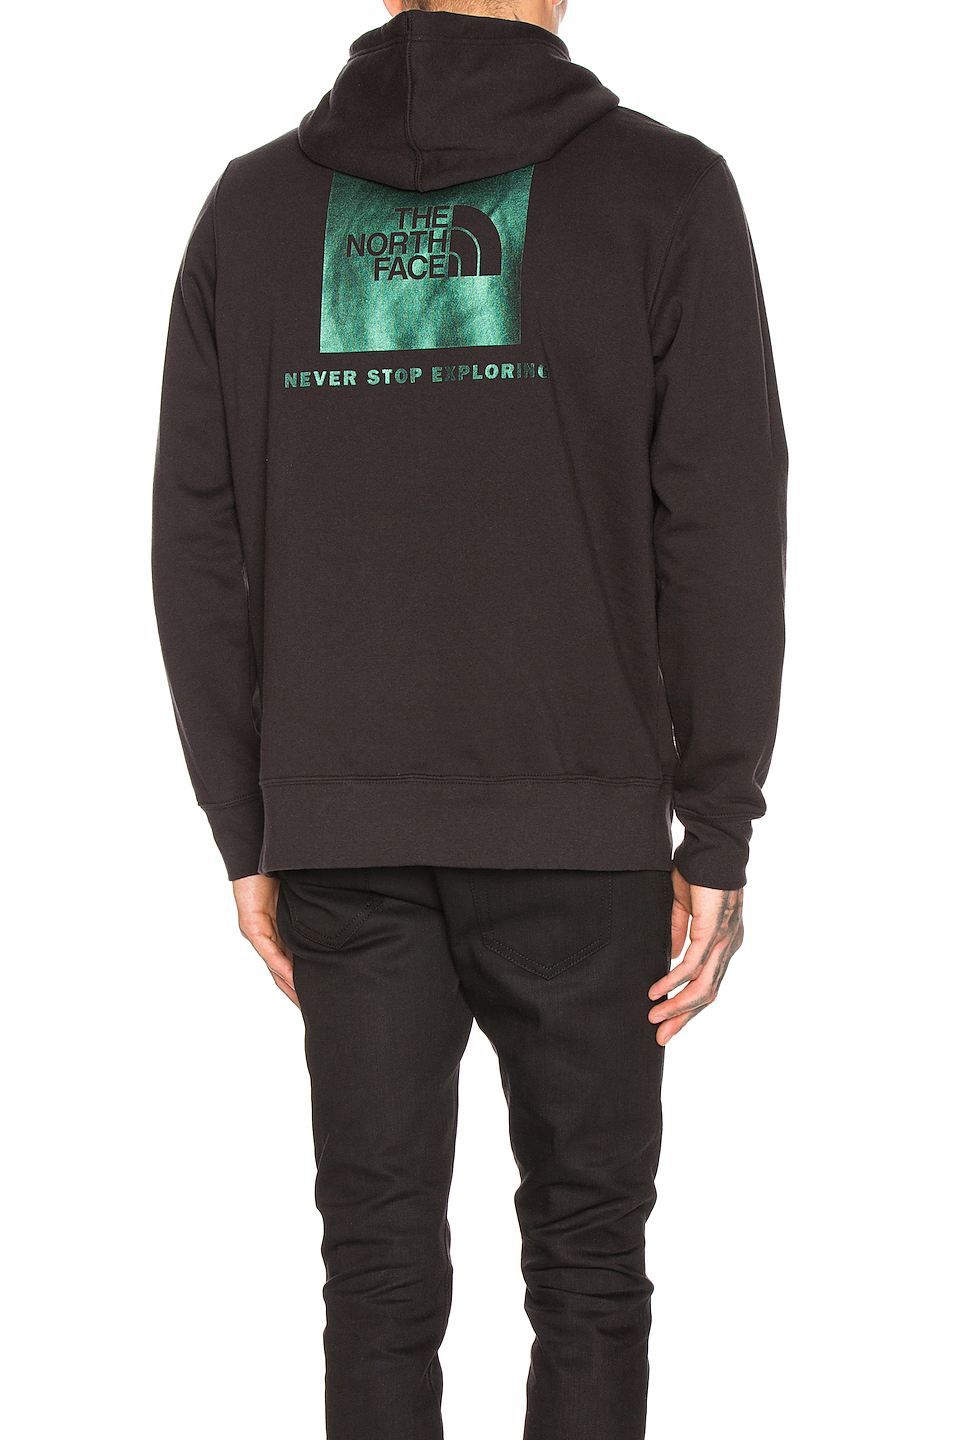 84d2c7a6e The North Face Red Box Pullover Hoodie In Black. in Tnf Black & Iridescent  Multi